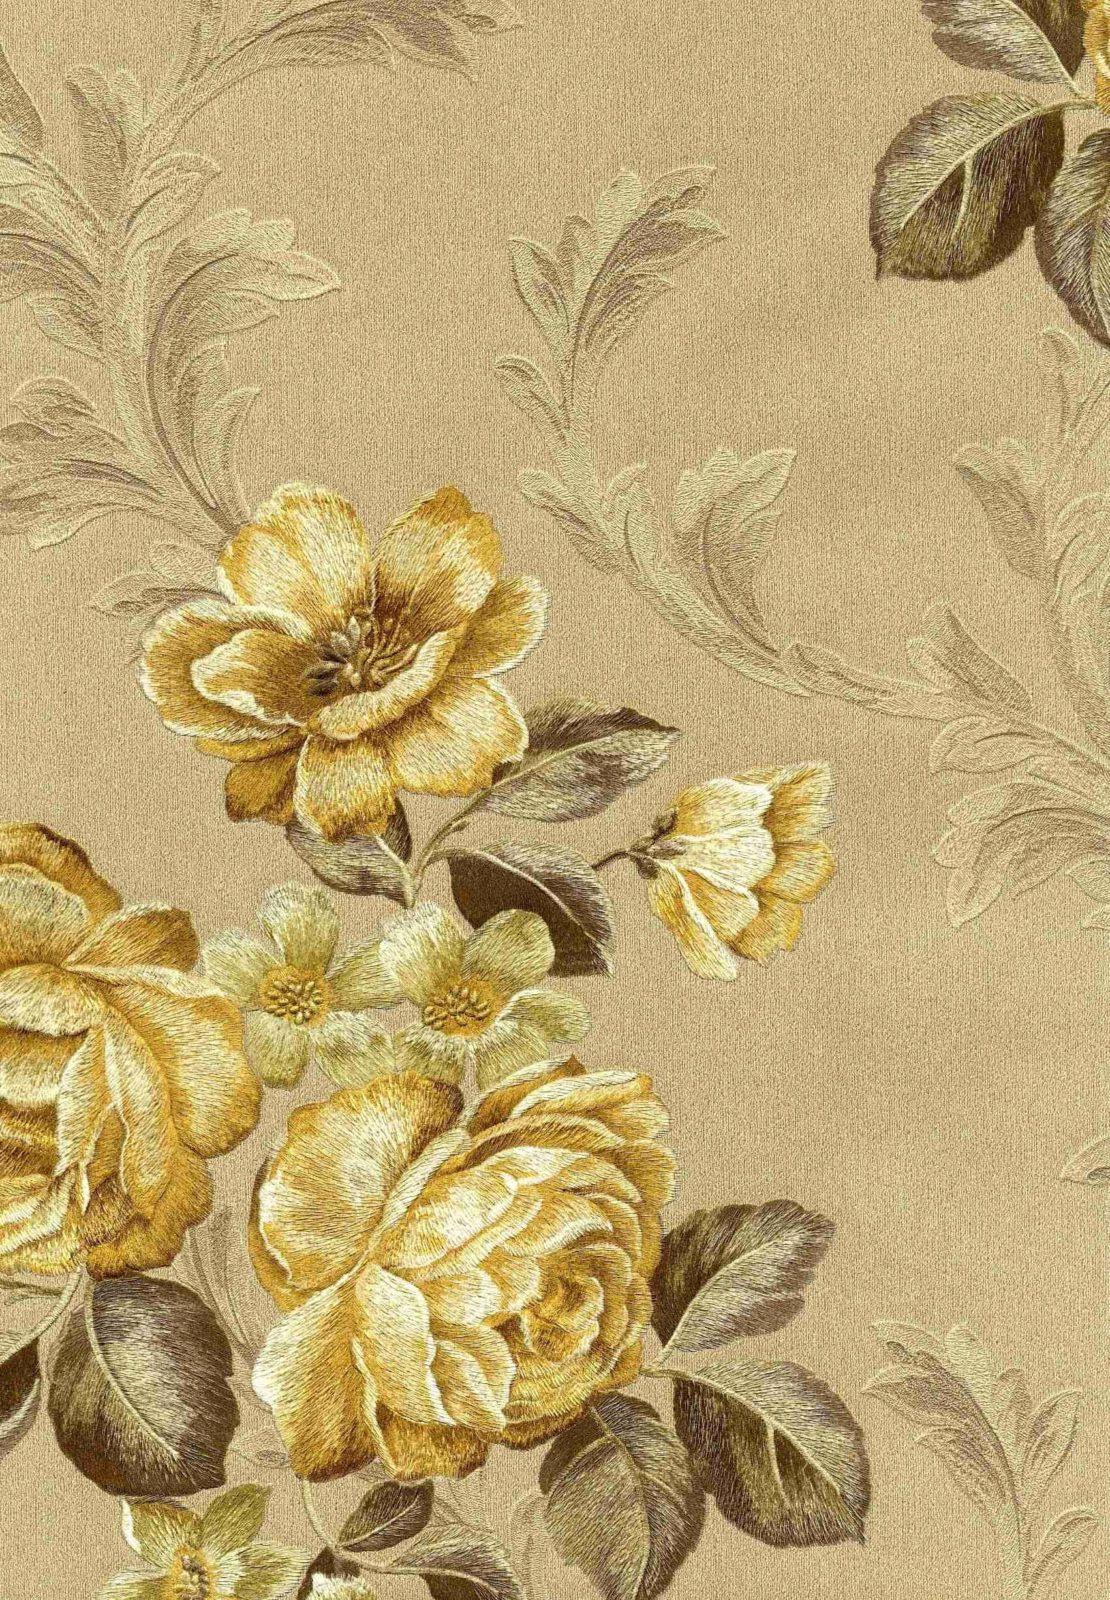 Zambaiti Piazza Grande Gold Floral Wallpaper 8526 Wallpaper World